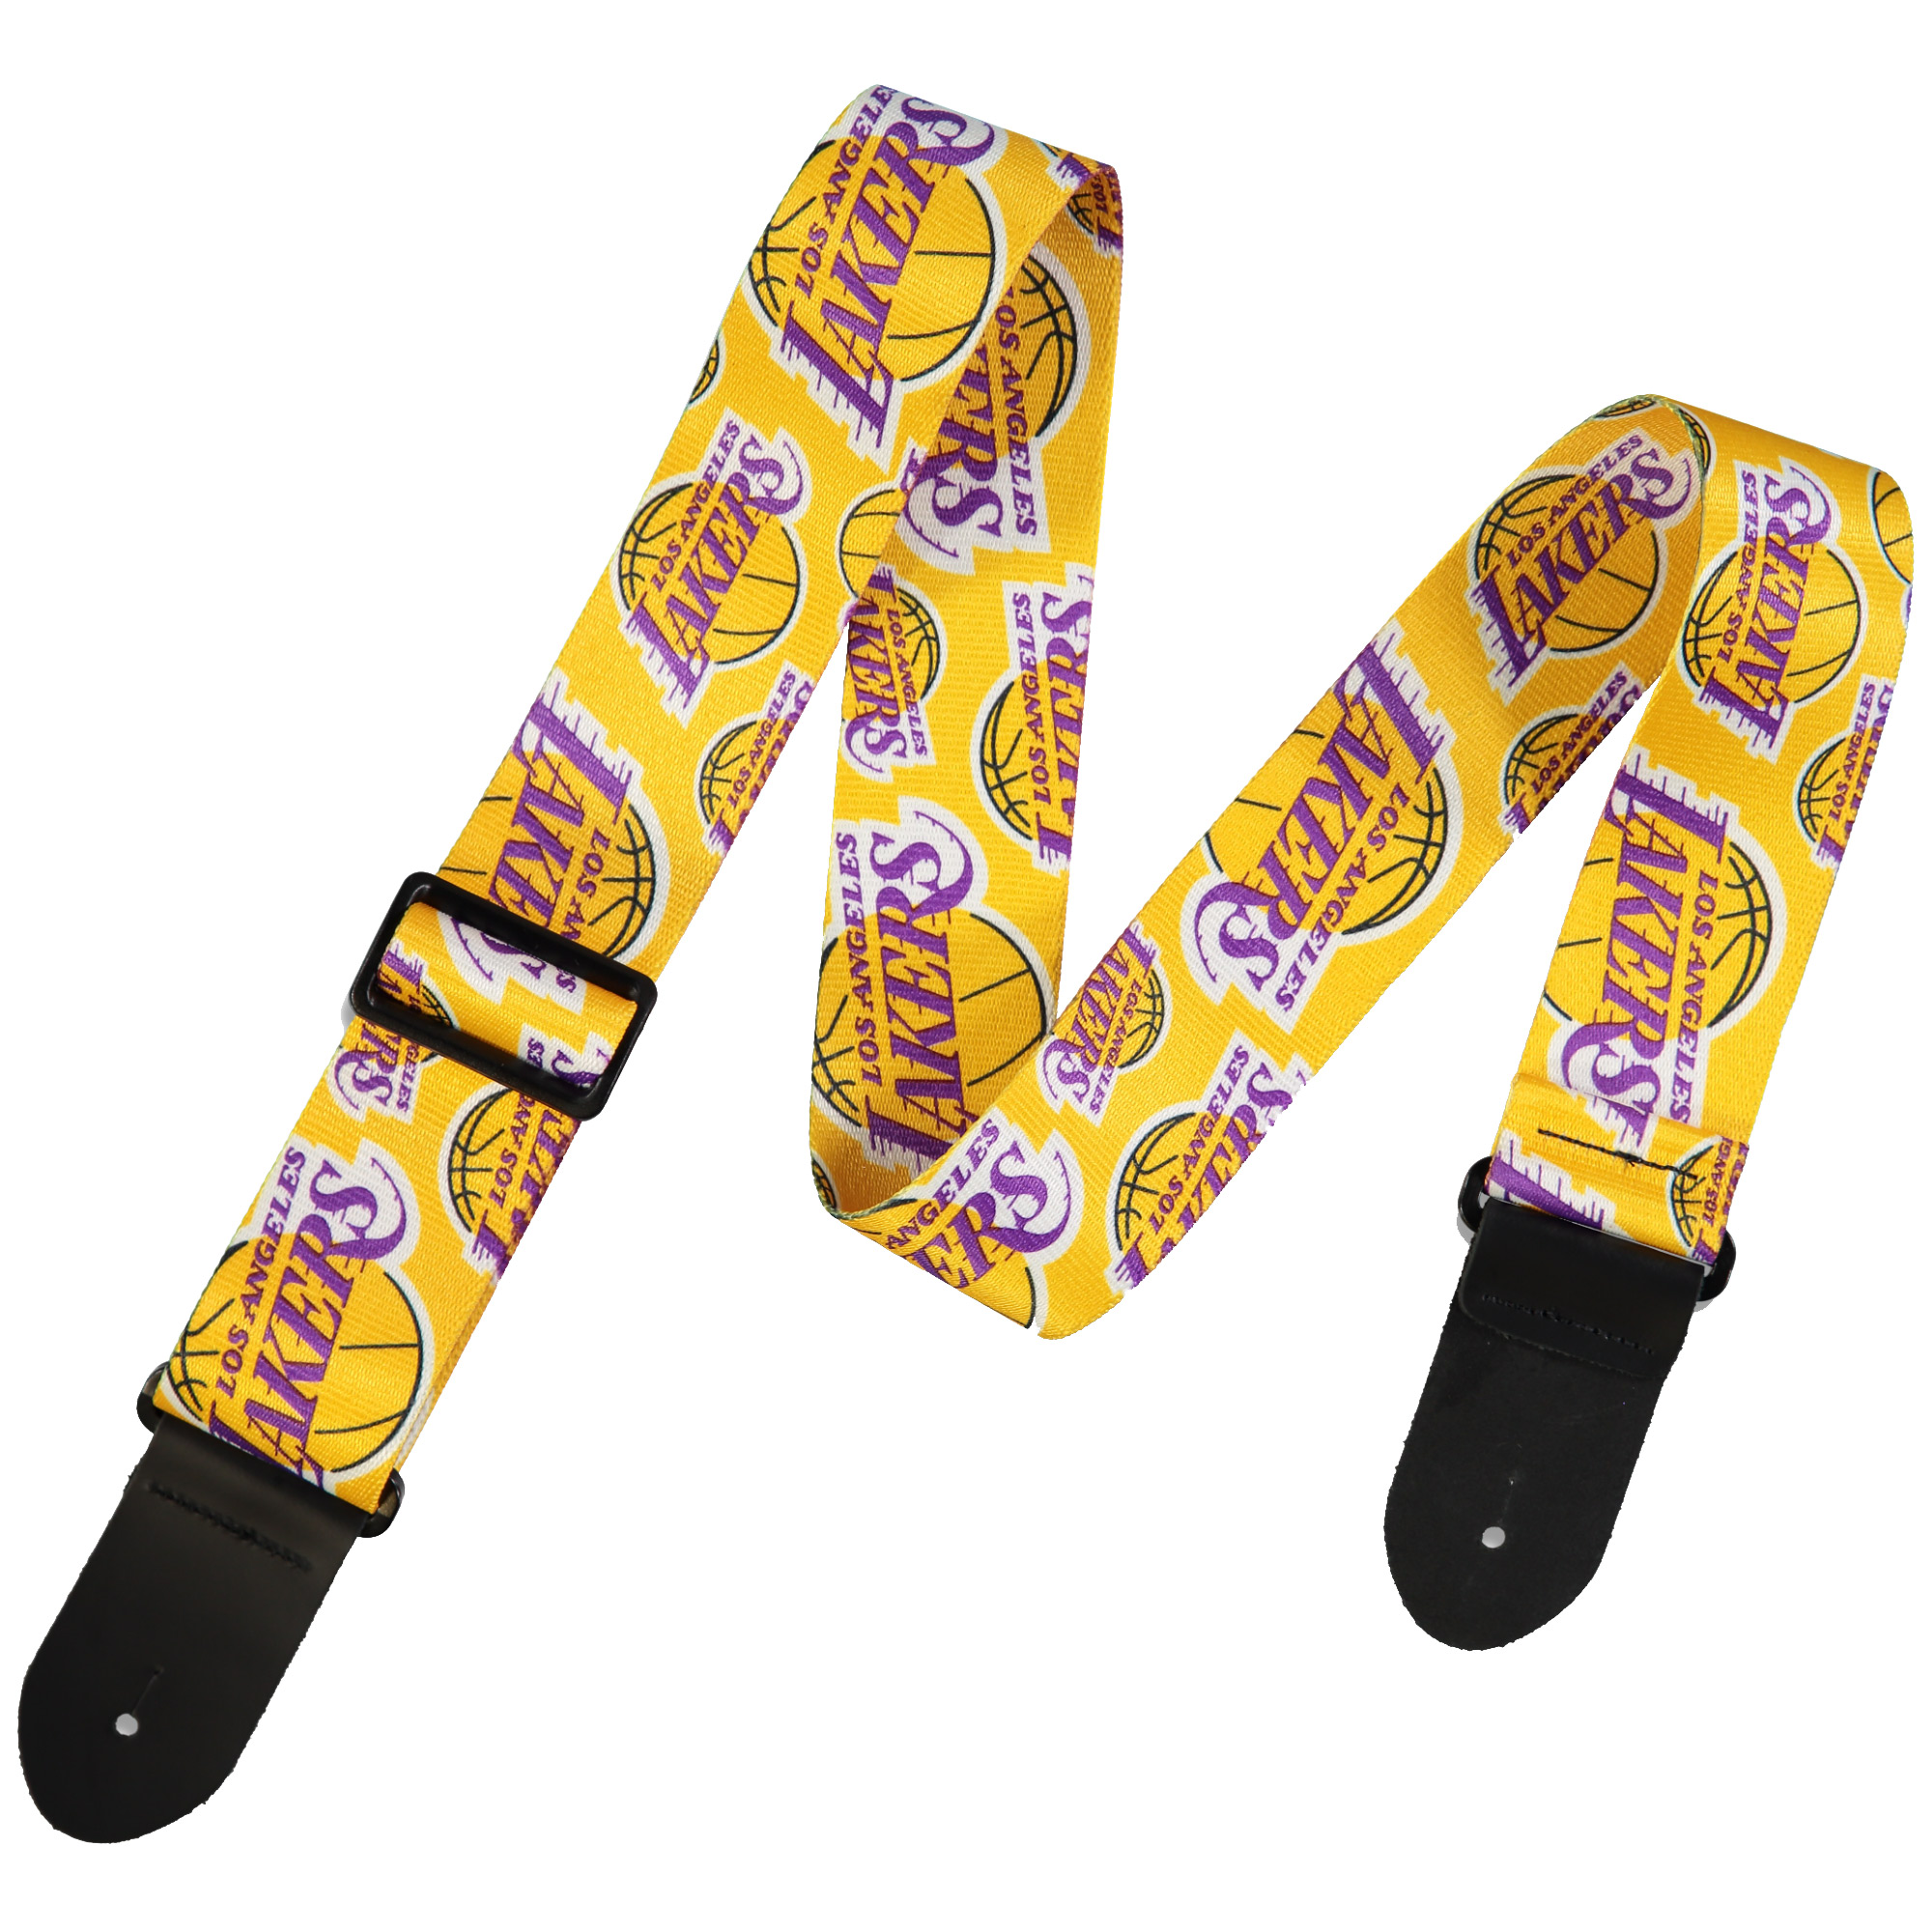 Los Angeles Lakers Woodrow Guitar Guitar Strap - No Size